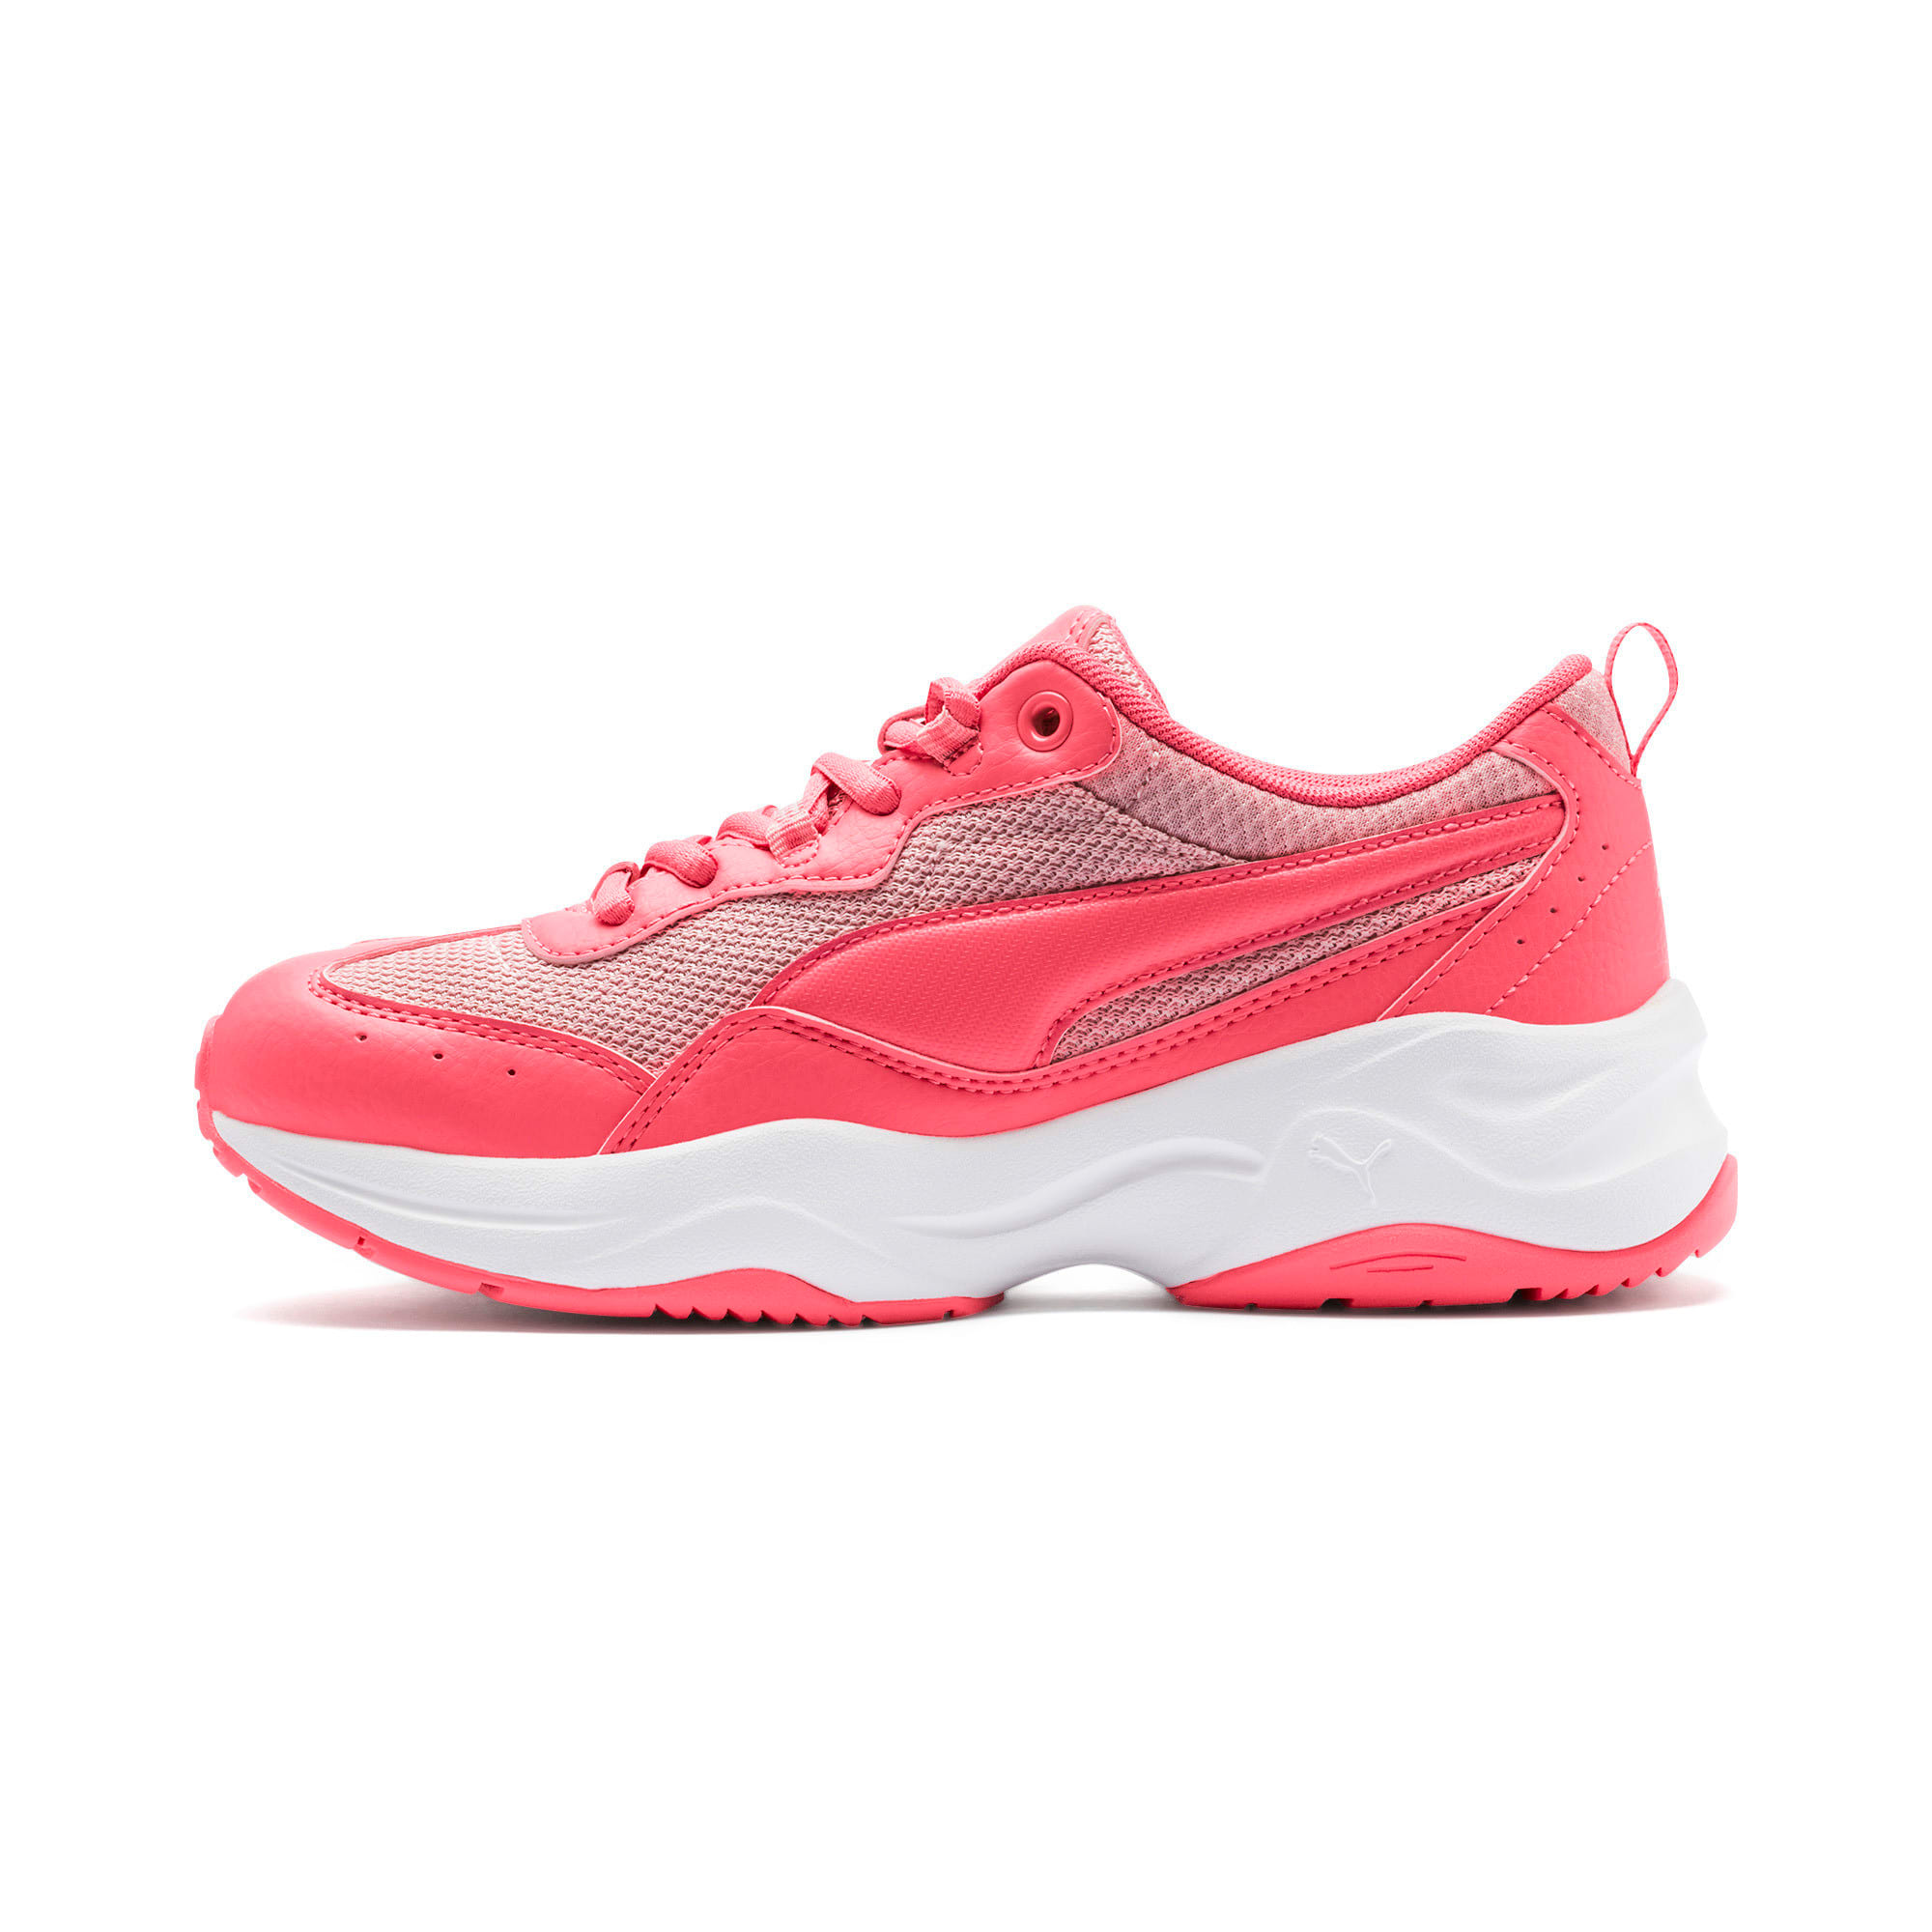 Thumbnail 1 of Cilia Youth Trainers, Calypso Coral-B Rose-White, medium-IND